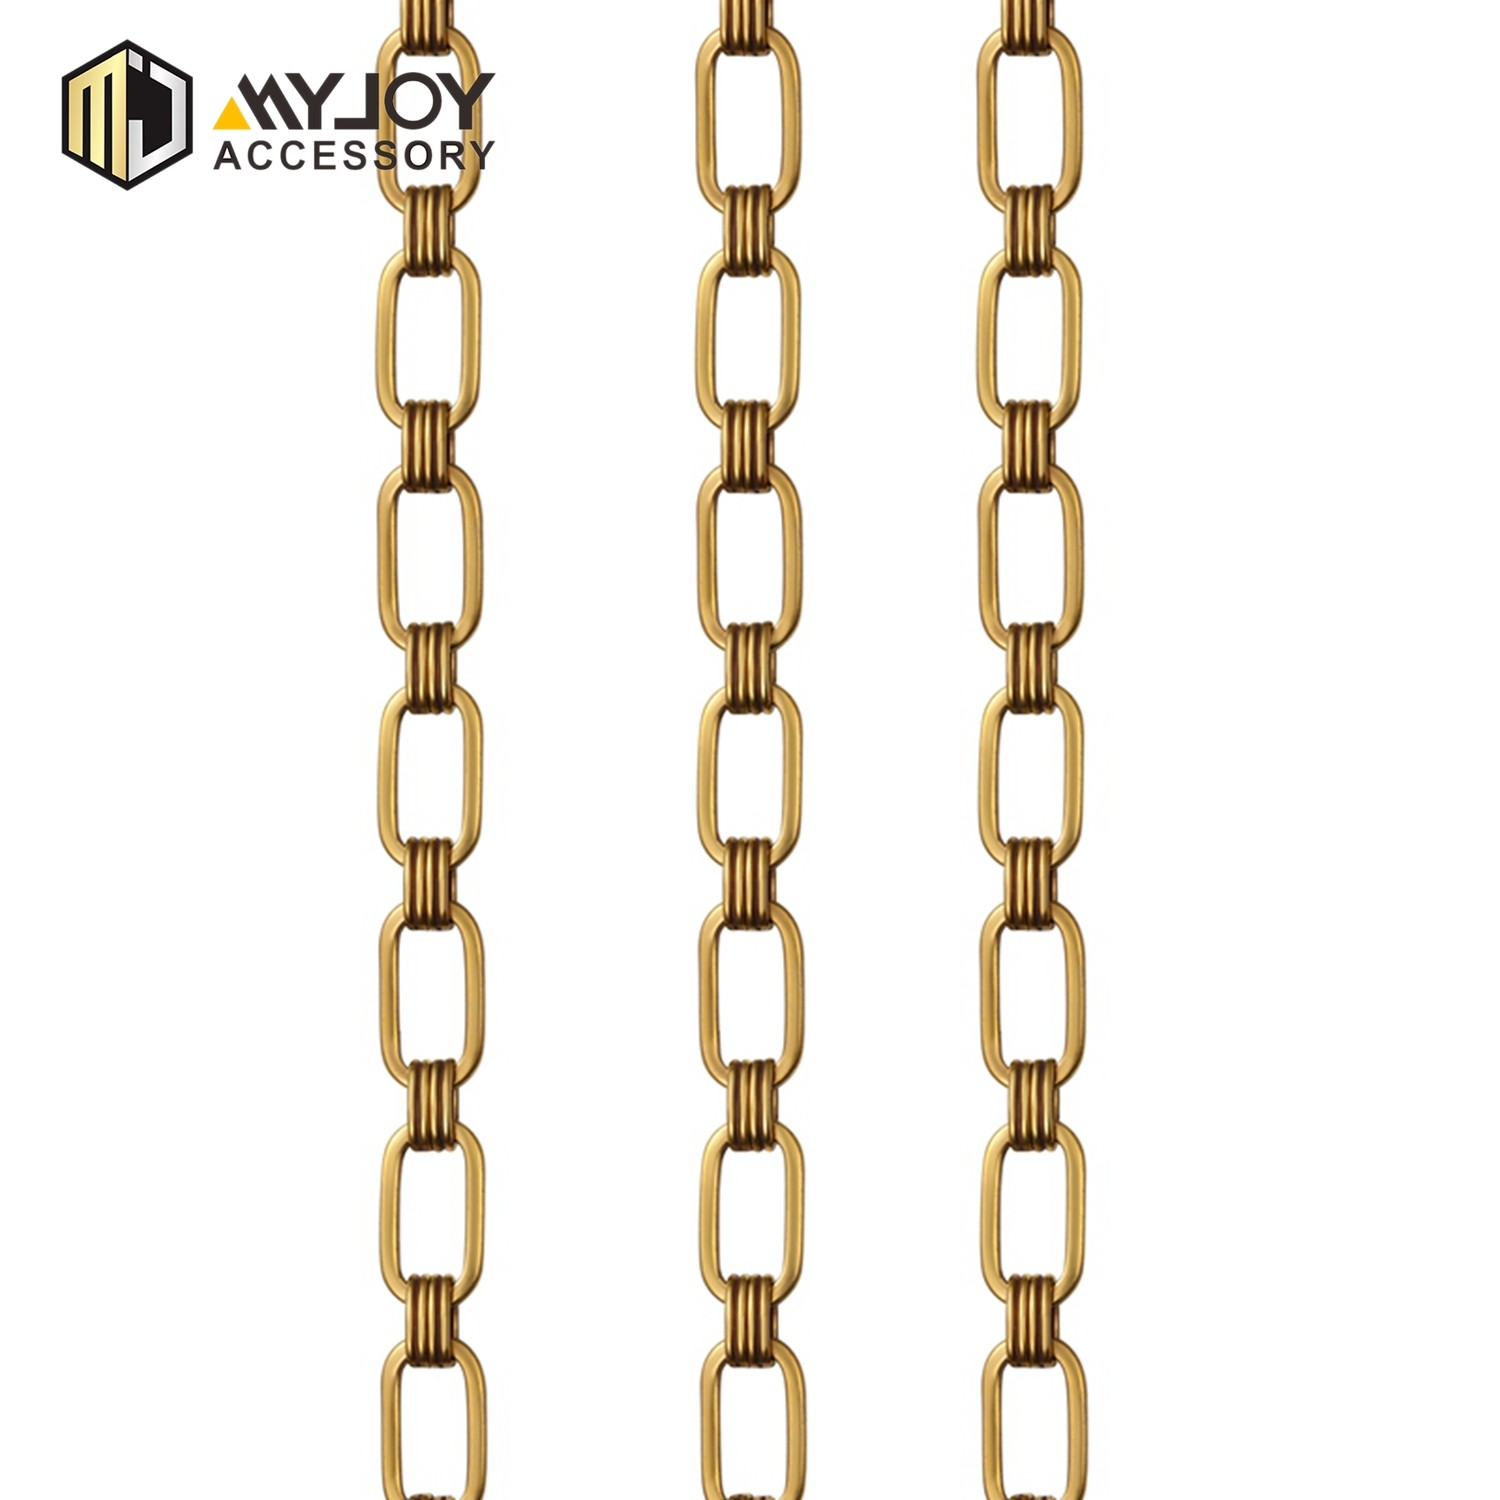 MYJOY color purse chain factory for bags-2